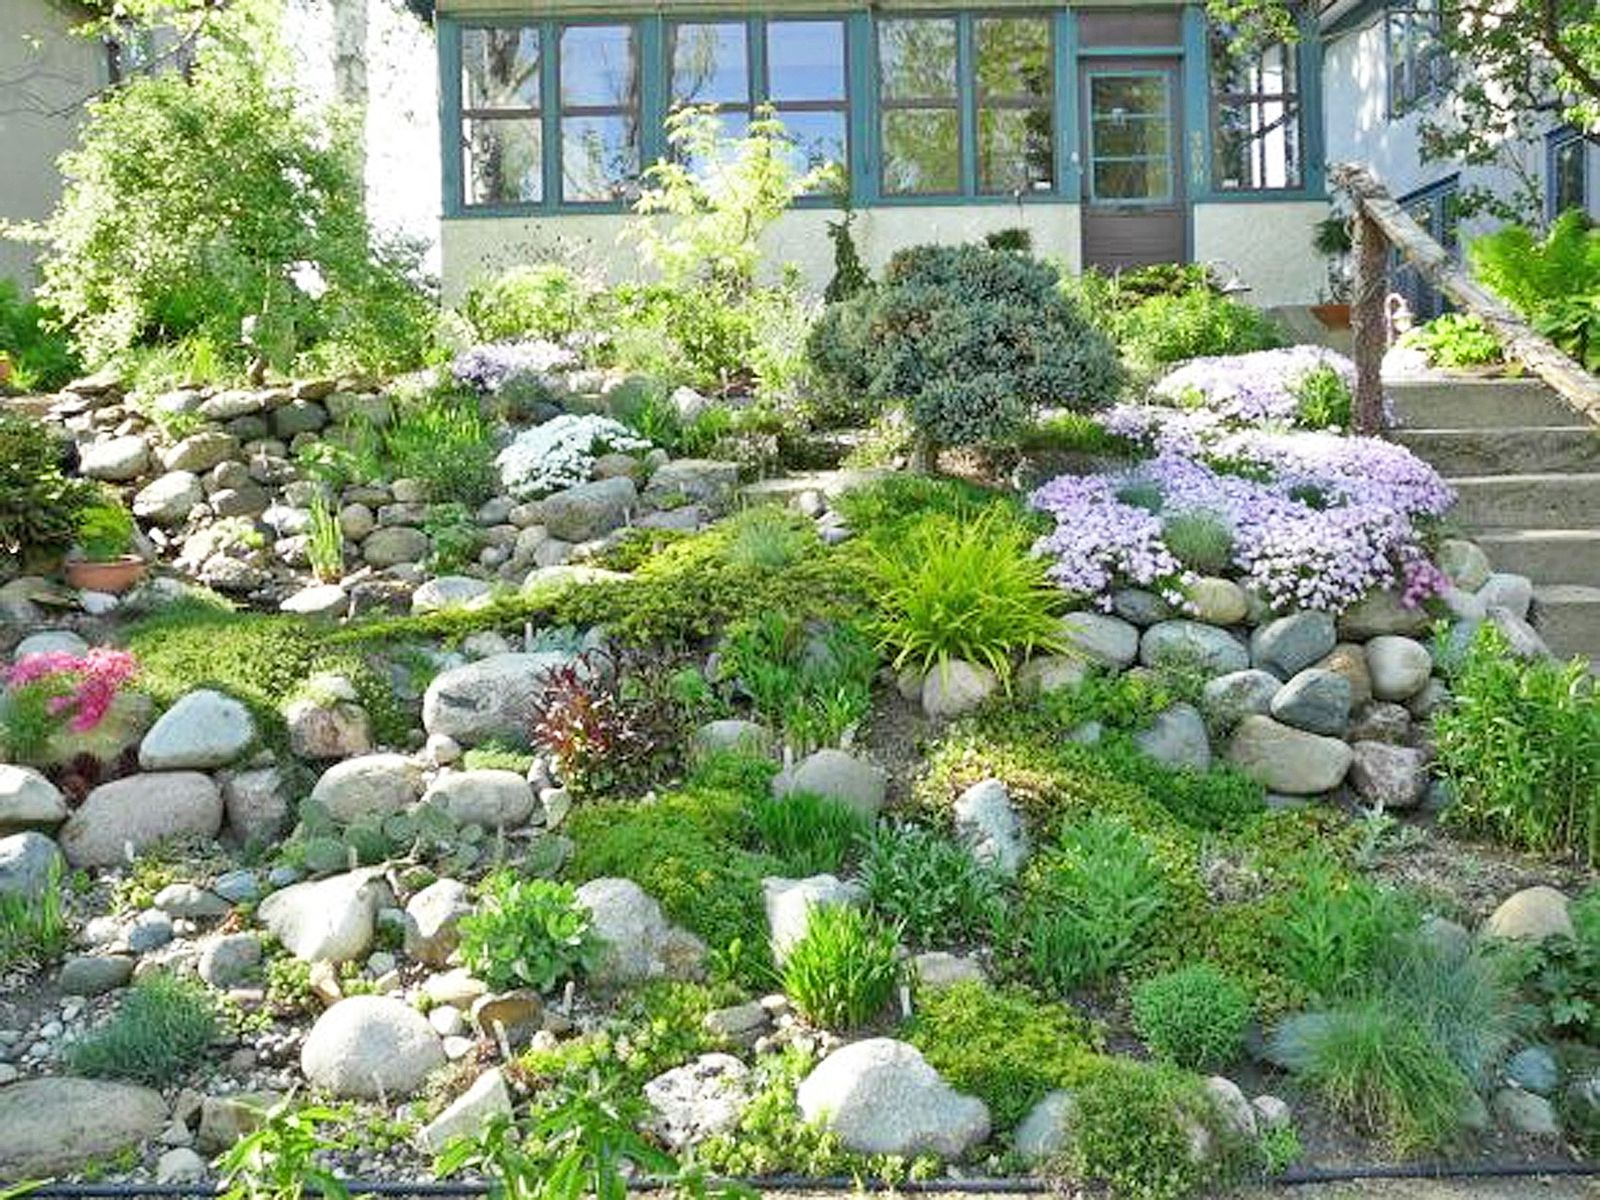 13 Hillside Landscaping Ideas To Maximize Your Yard regarding 13 Genius Ideas How to Upgrade Landscaping A Sloped Backyard